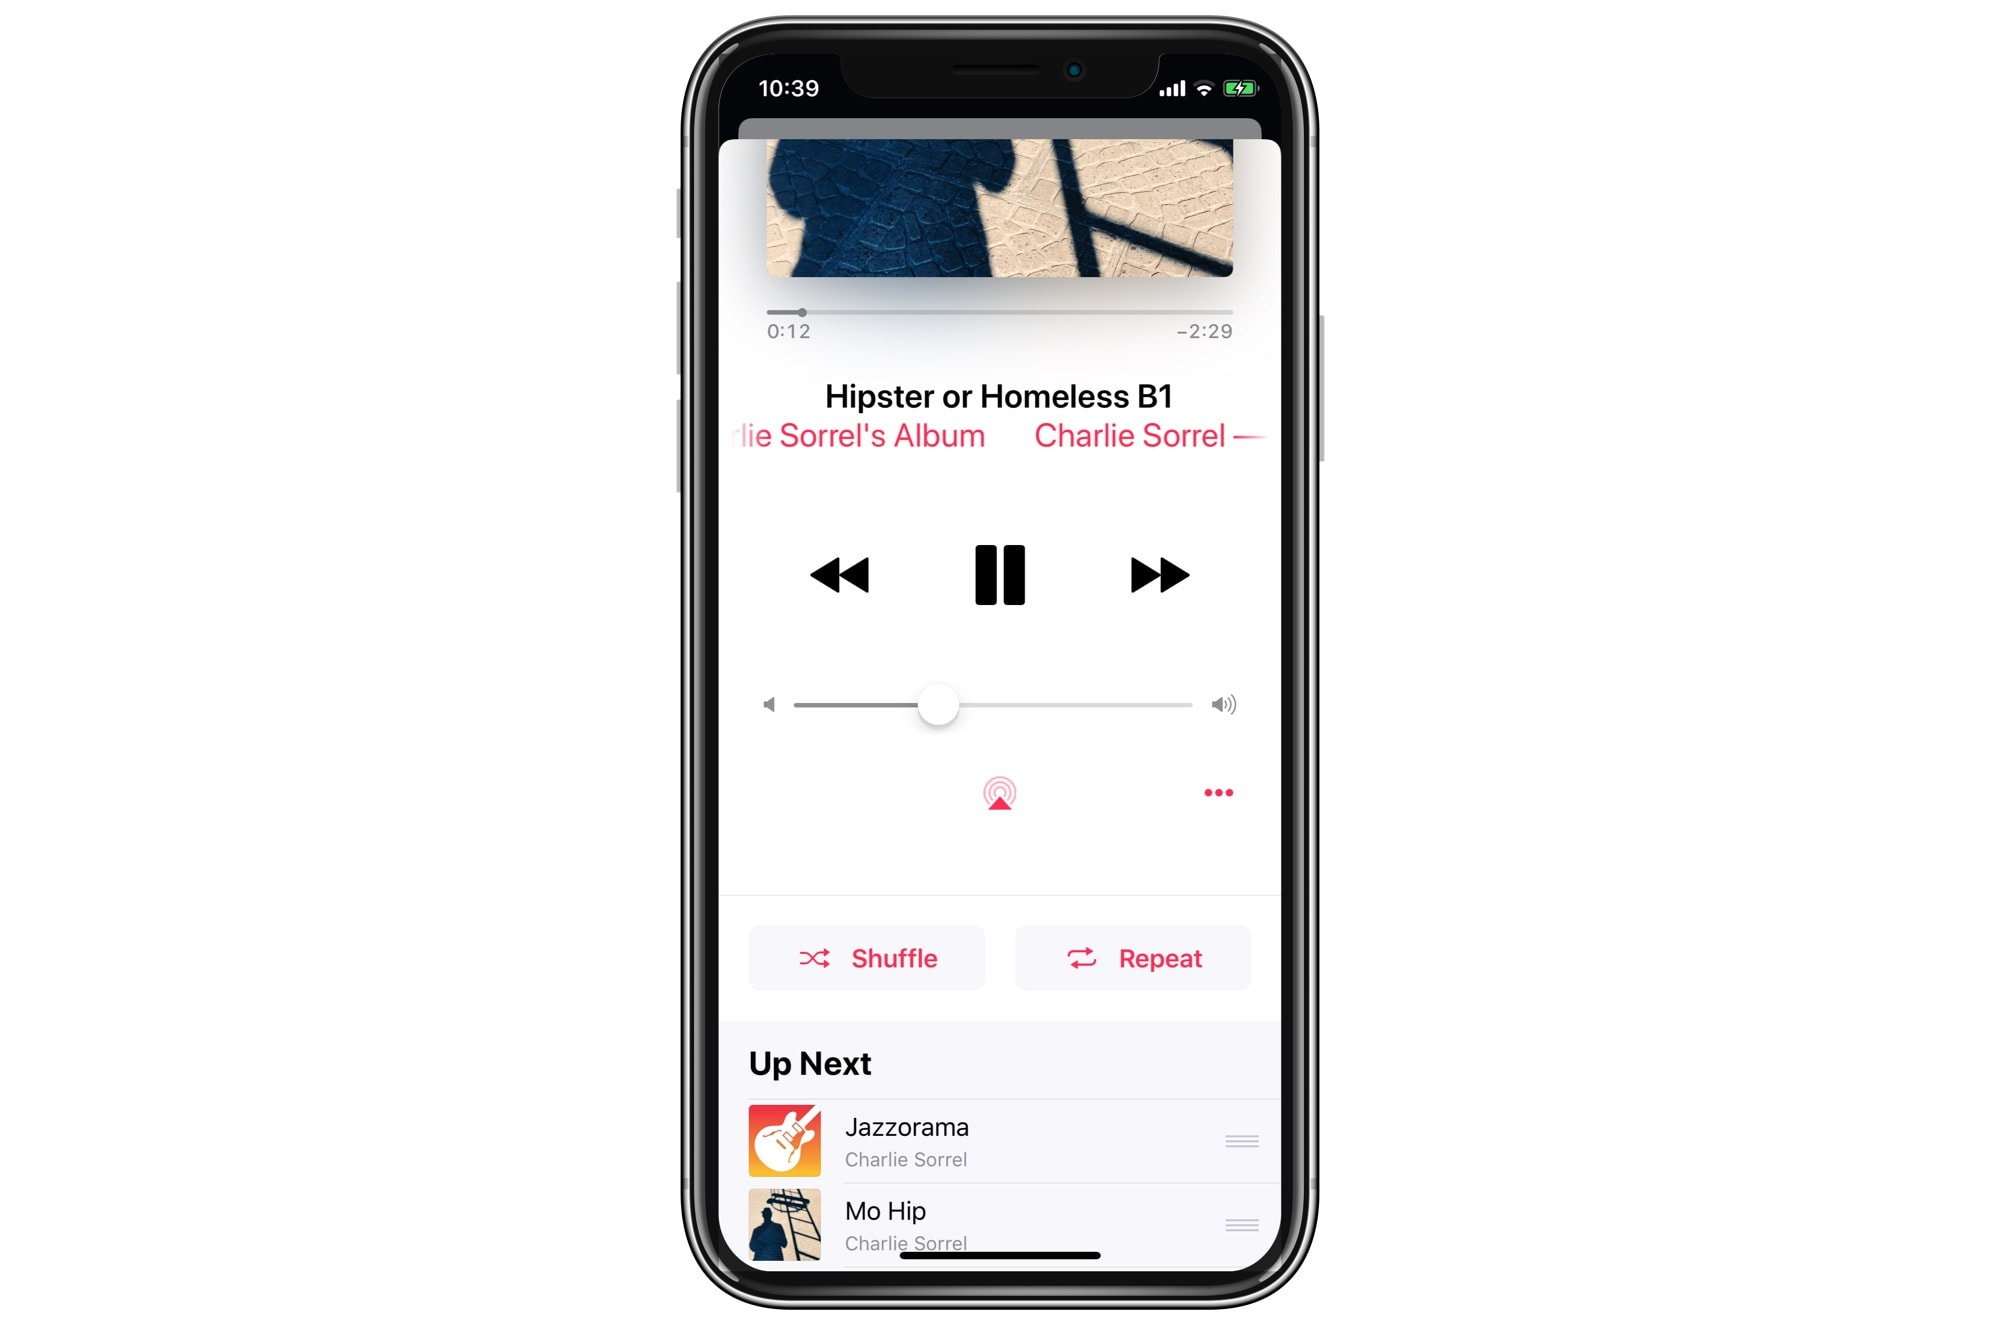 The old way to shuffle and repeat songs and albums in Apple Music.